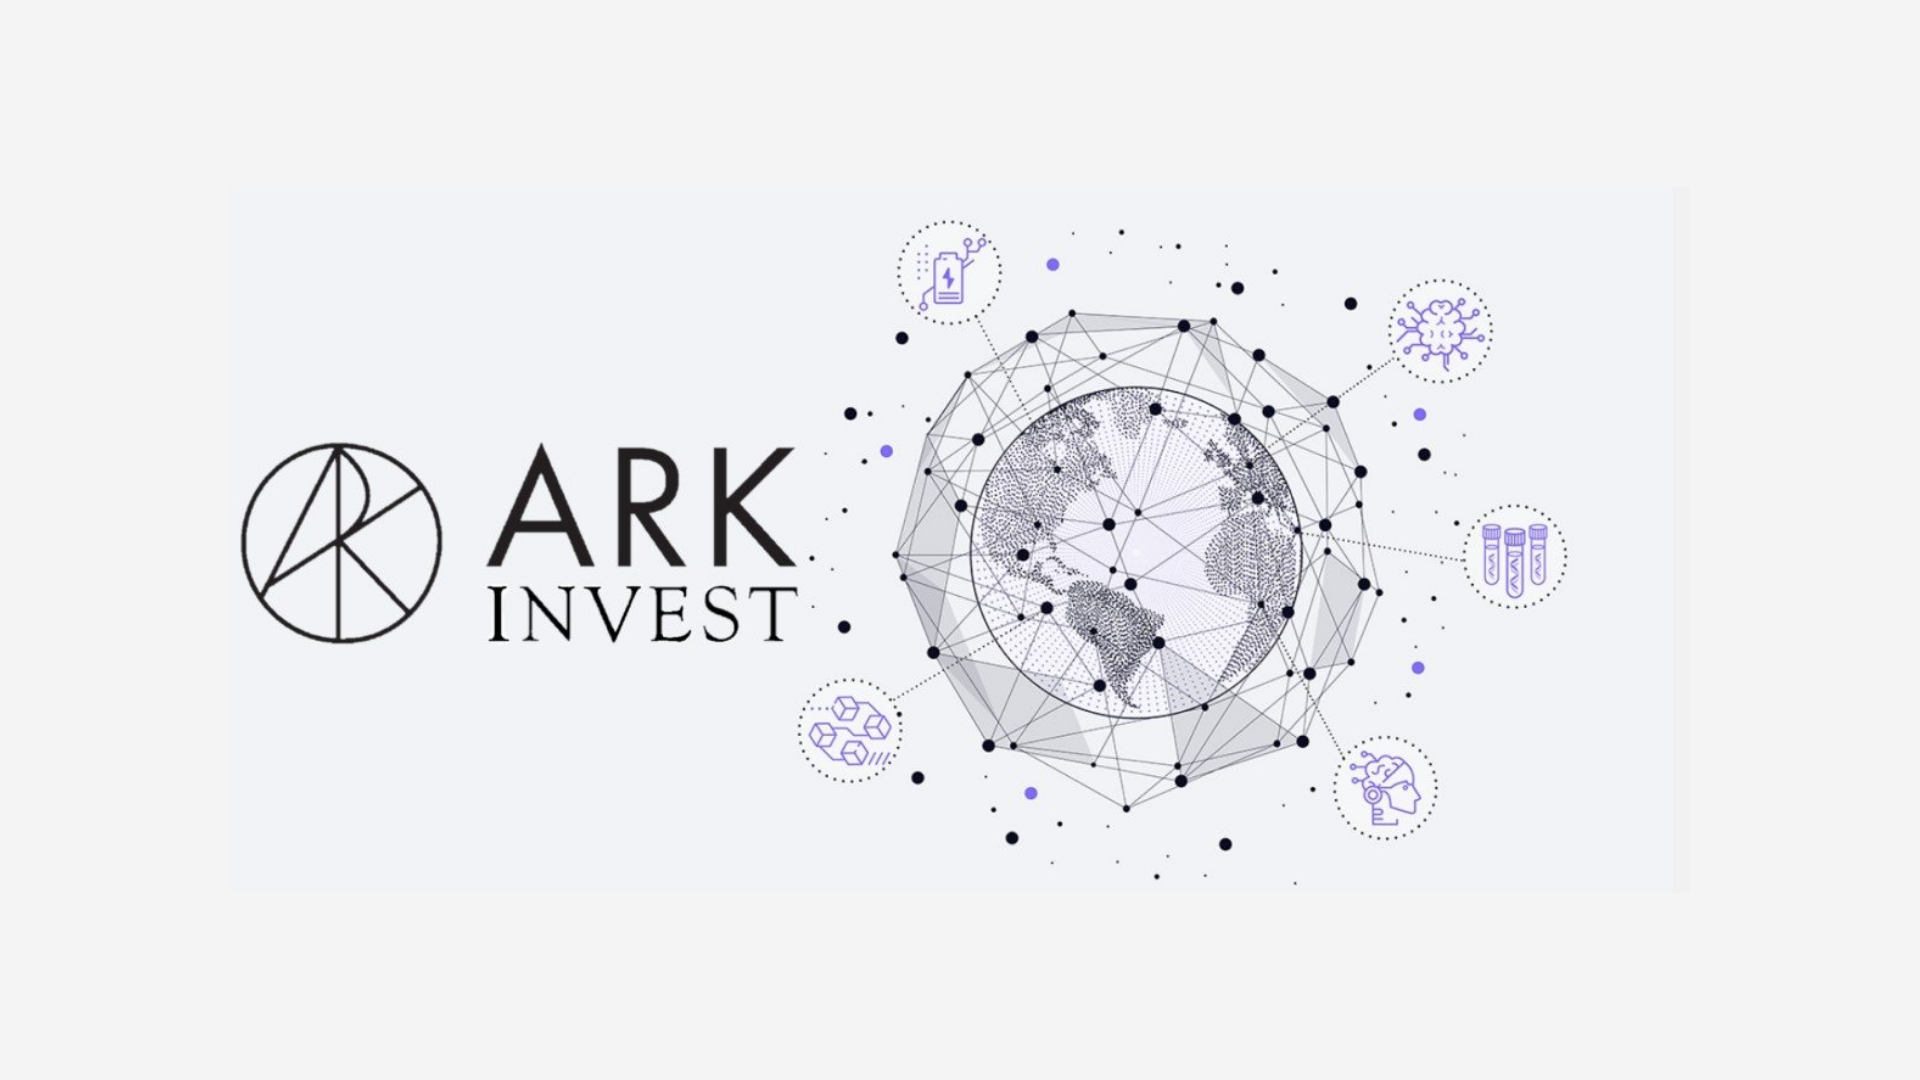 Cathie Wood's Ark Invest Gives a Prediction for Ethereum and Bitcoin